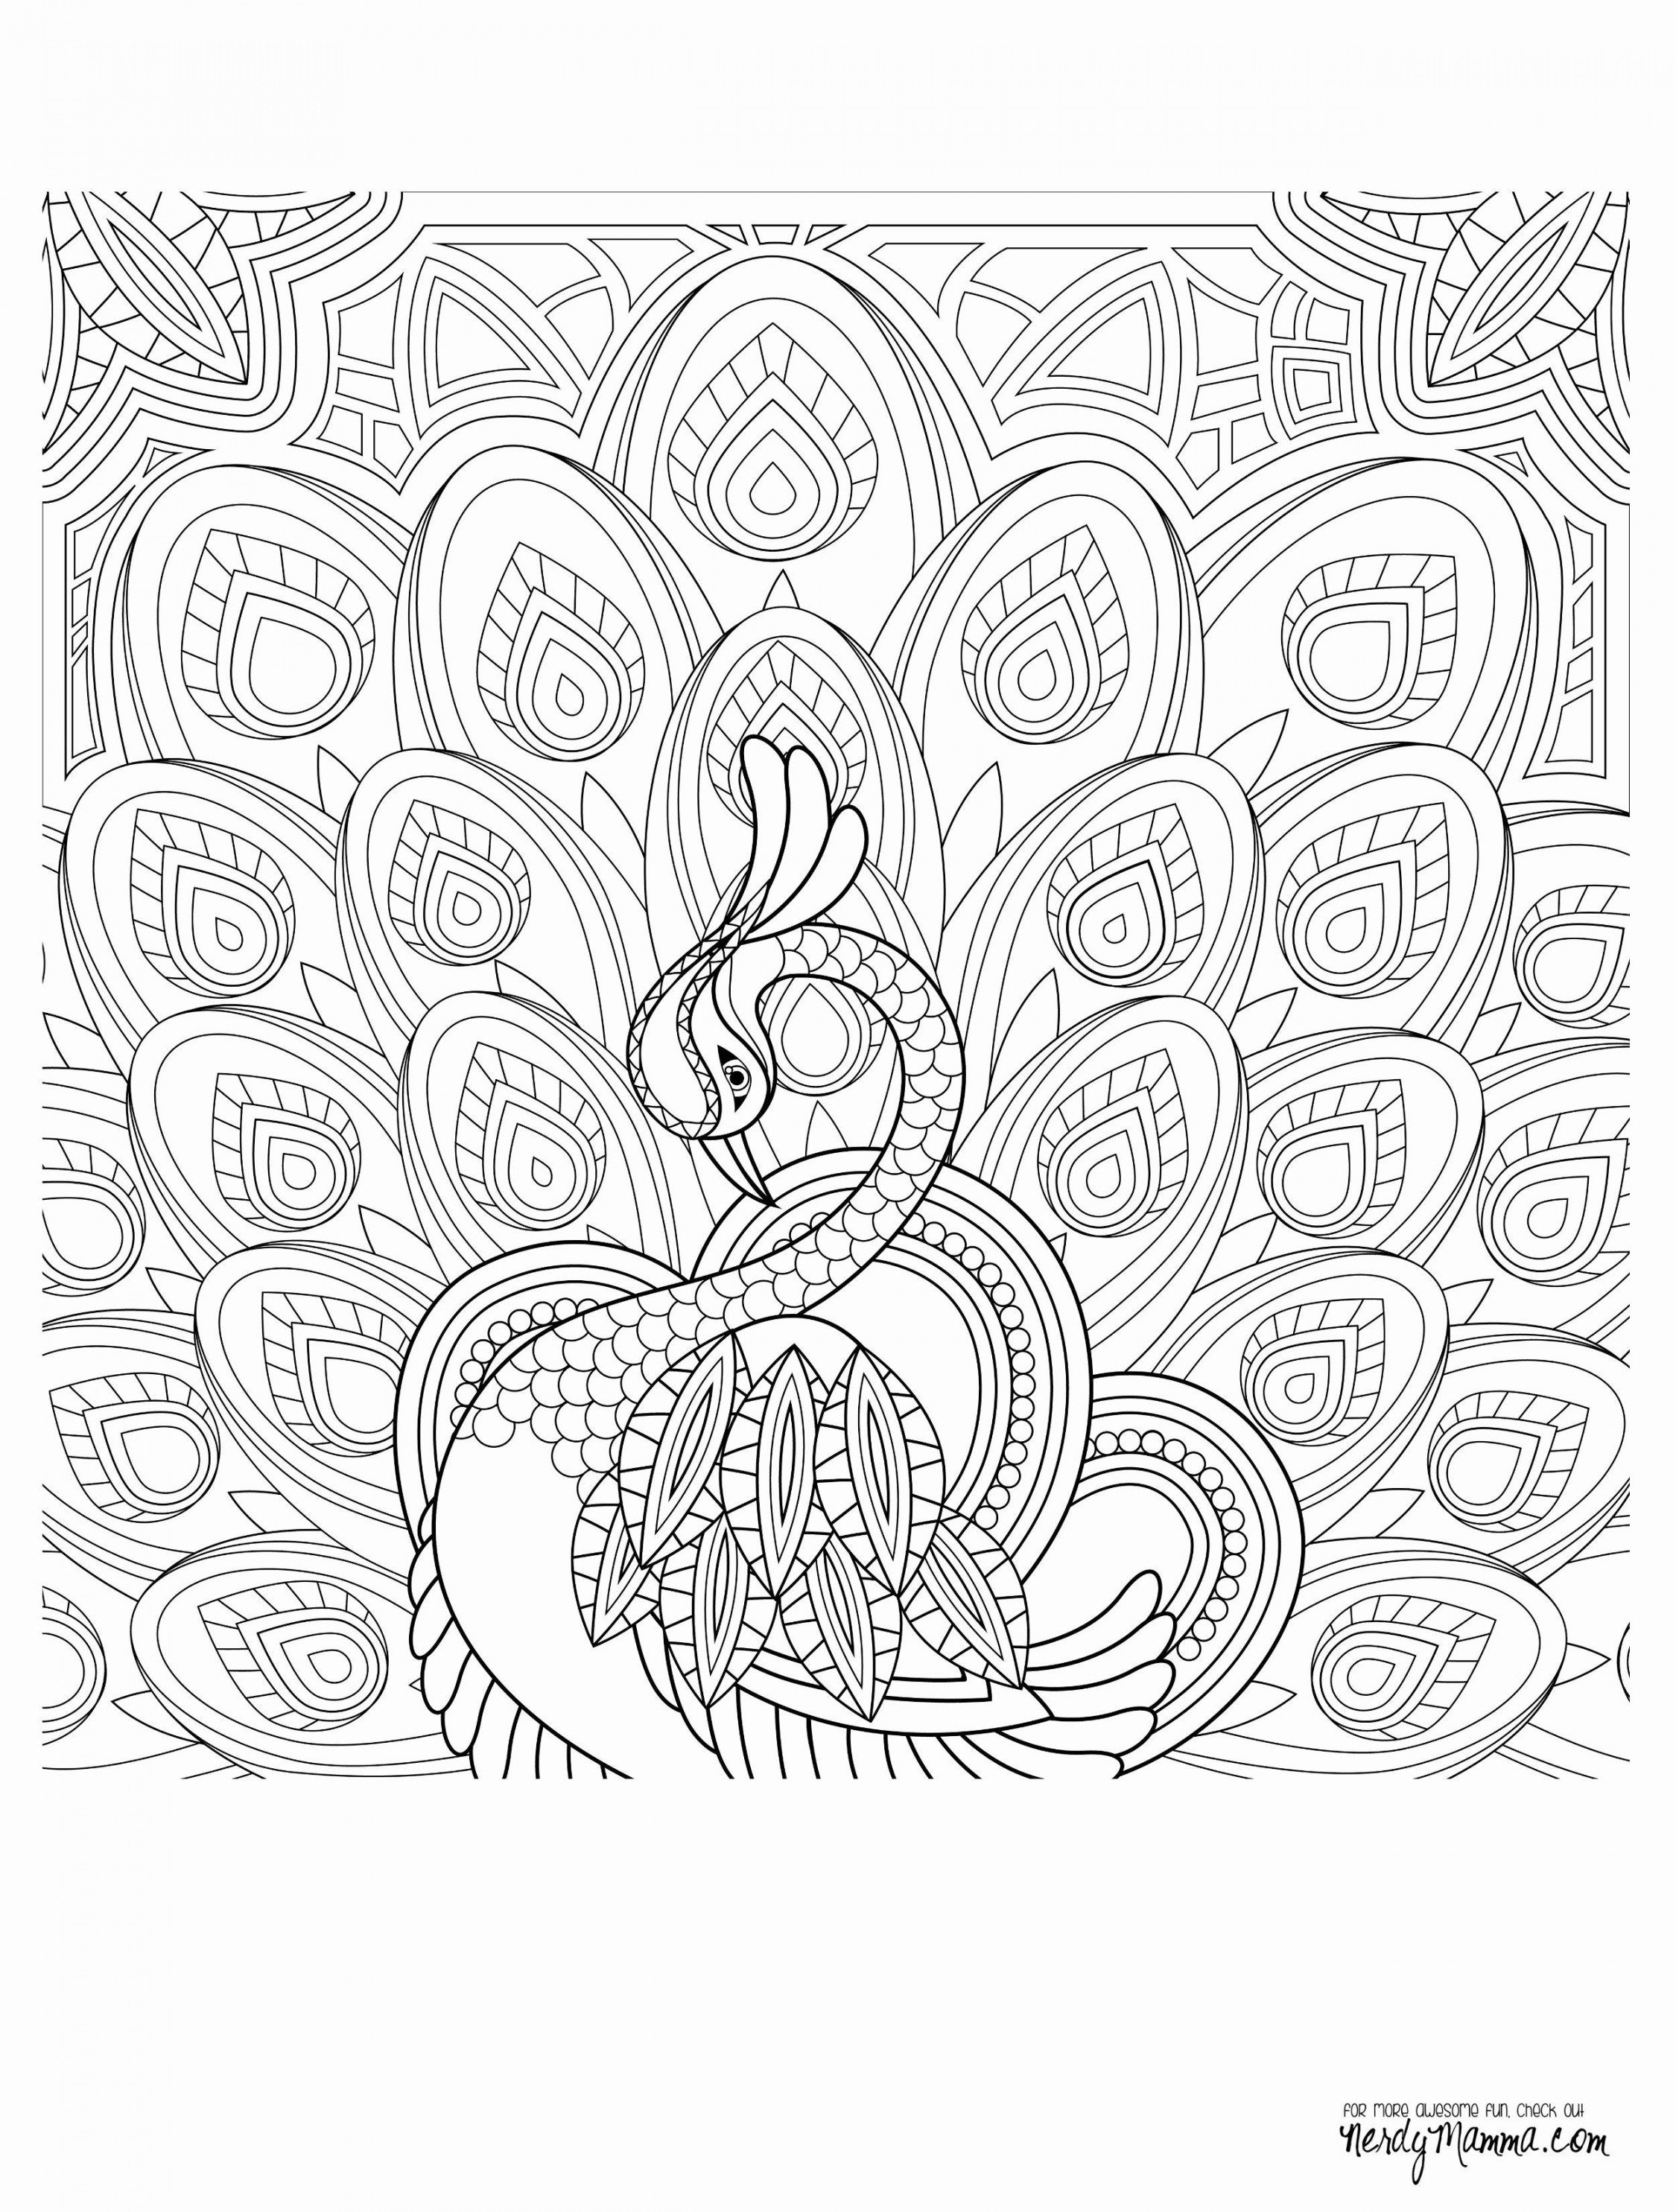 Teapot Coloring Page Tea Kettle Coloring Page Images Of Teapot Coloring Page Printable